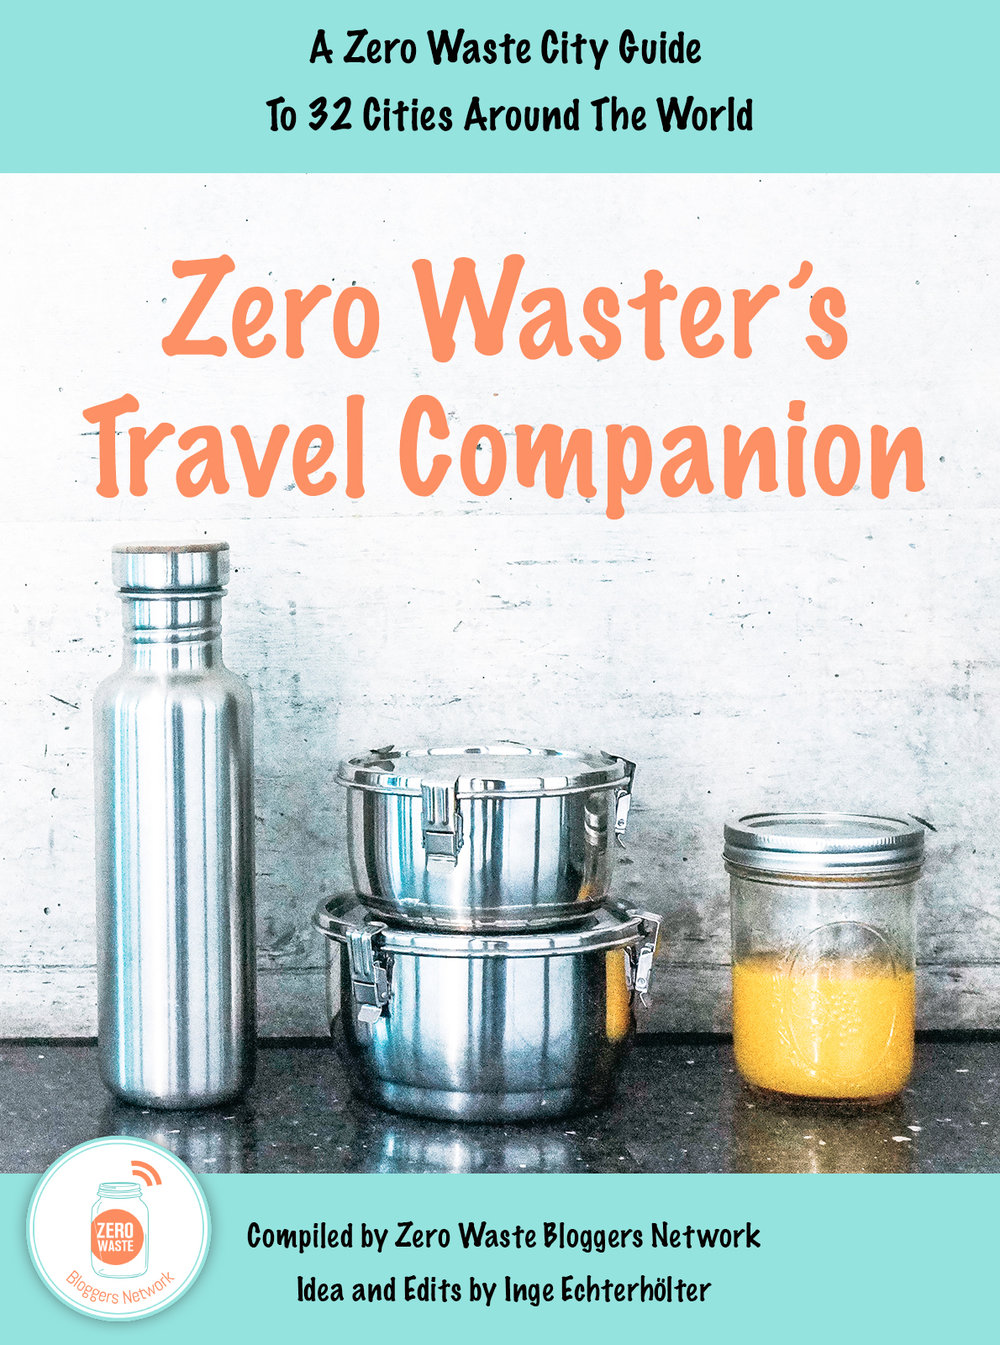 Chloé Lepeltier, Zero Waster's Travel Companion Zero Waster's Travel Companion invites you to travel 32 cities around the world Zero Waste Friendly.